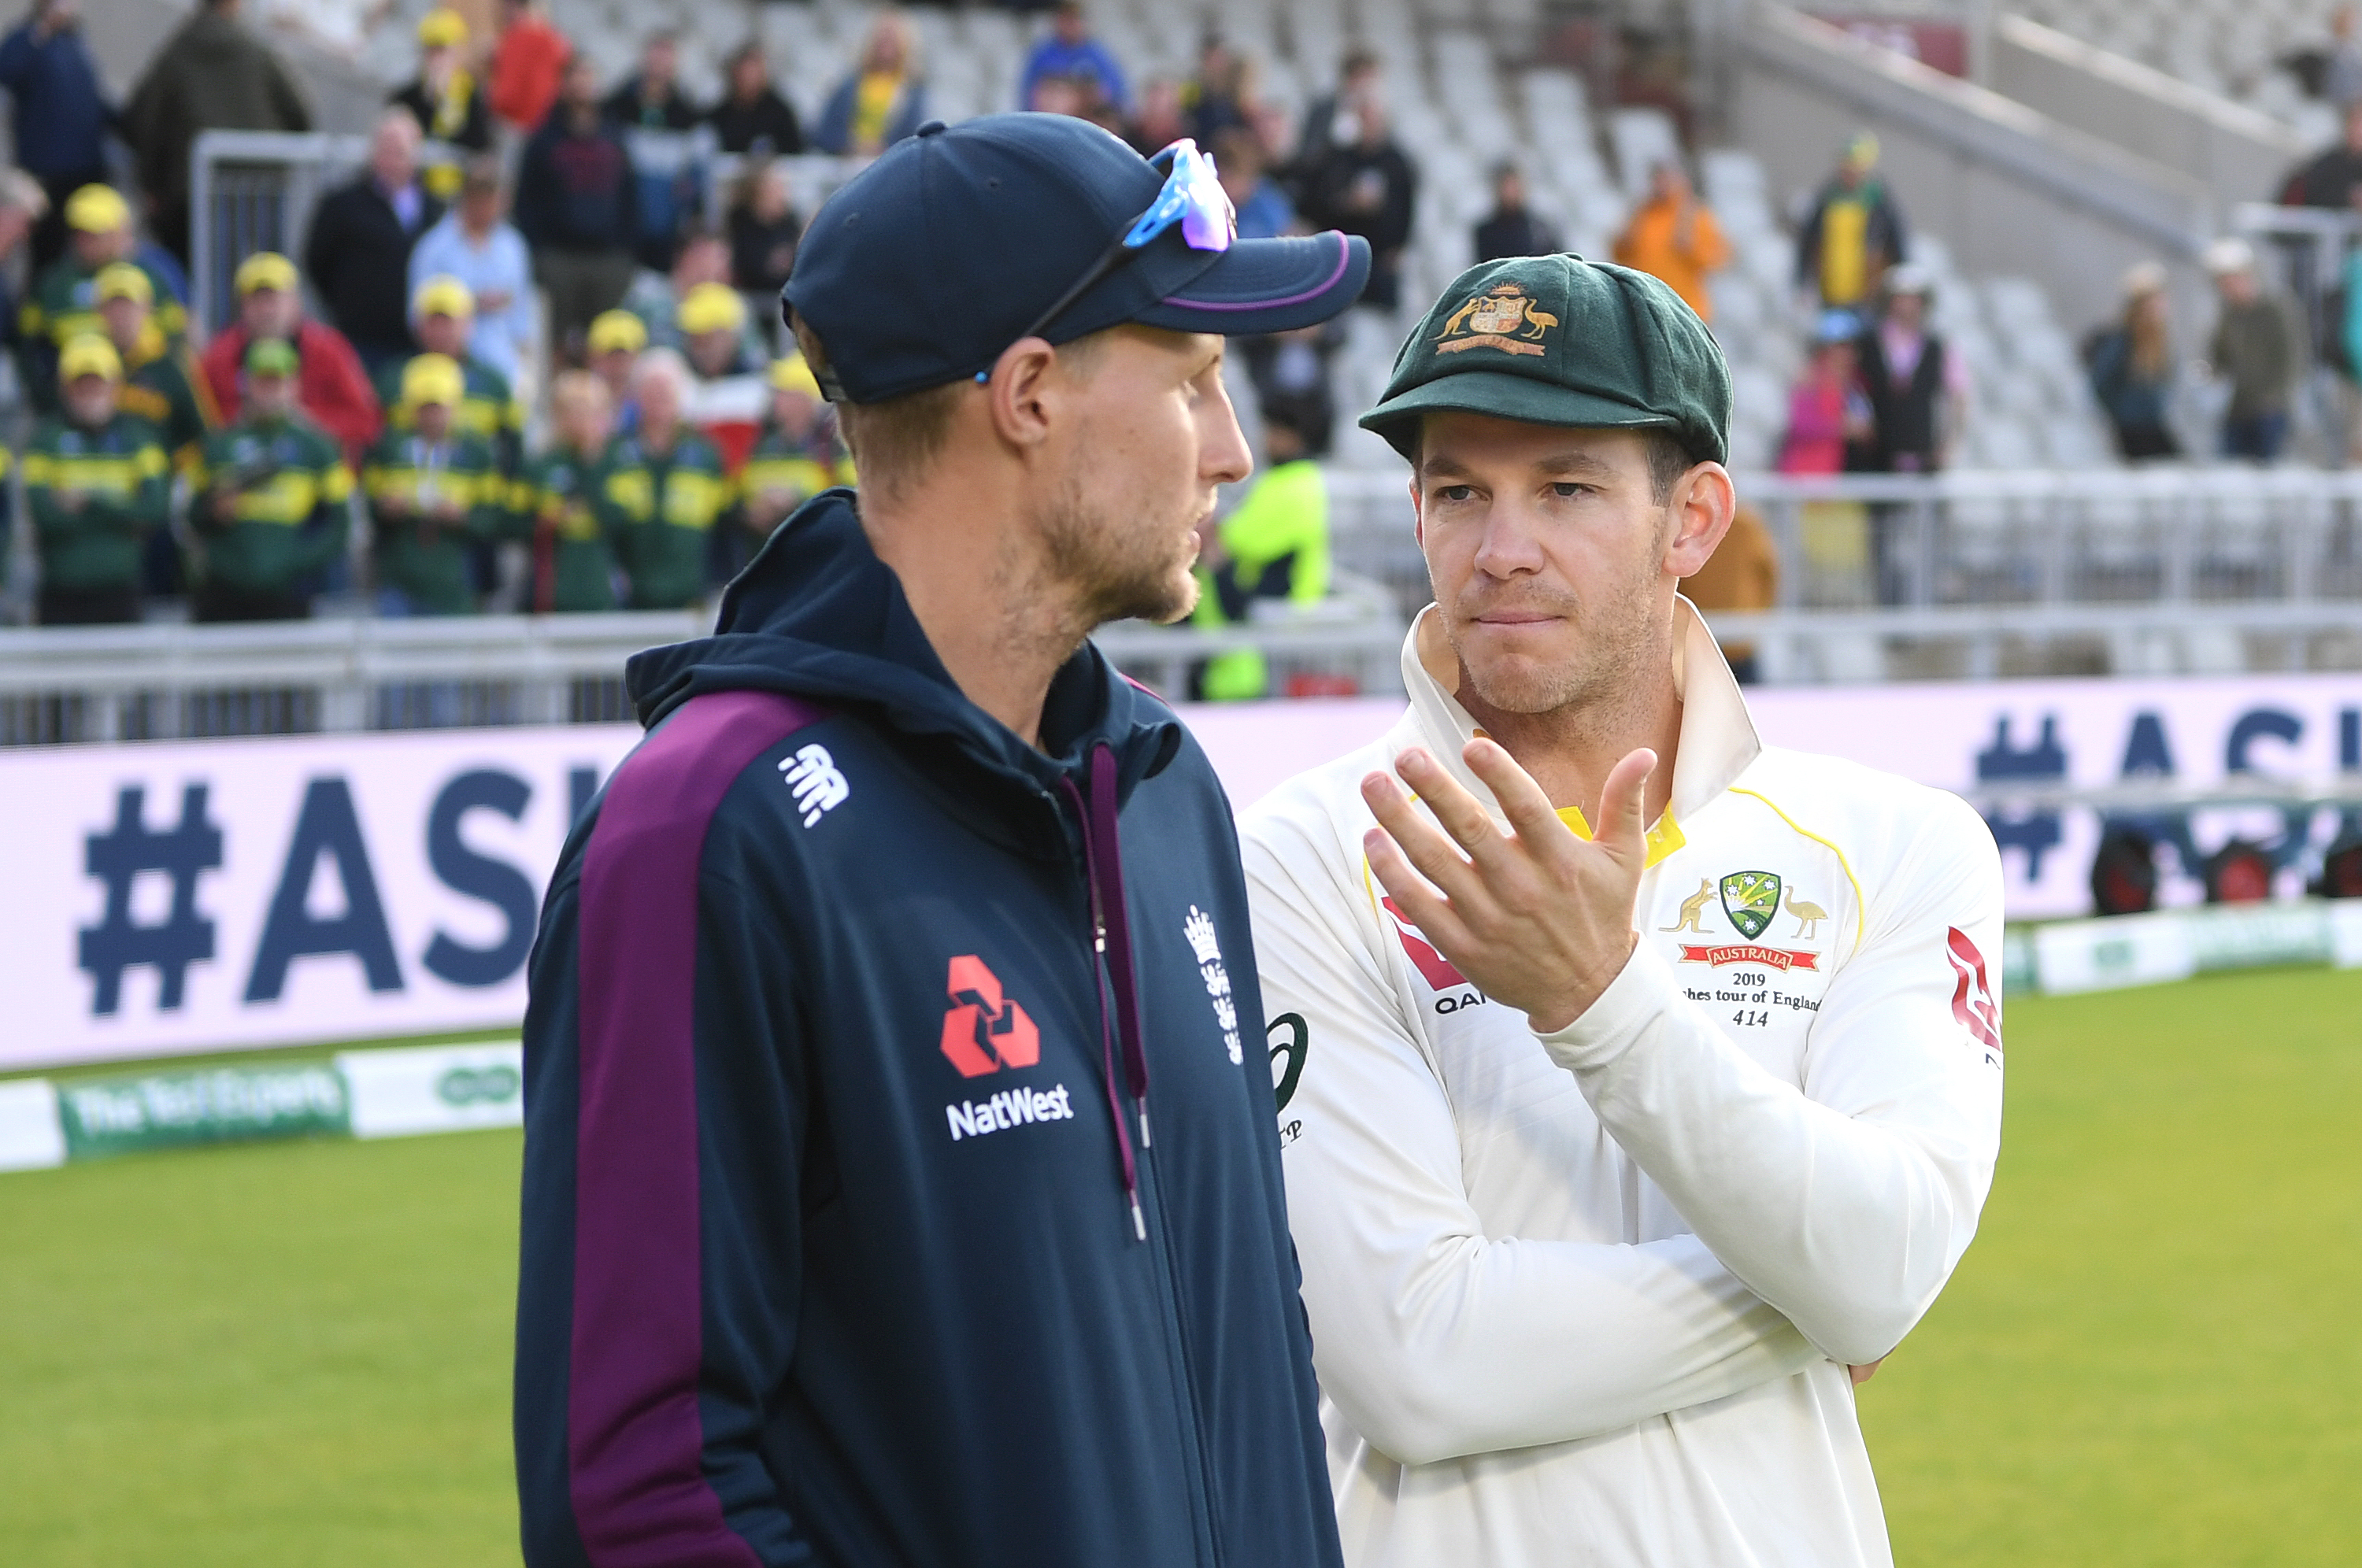 'We want this Test as much as any other in the series' – Paine declares Oval intentions